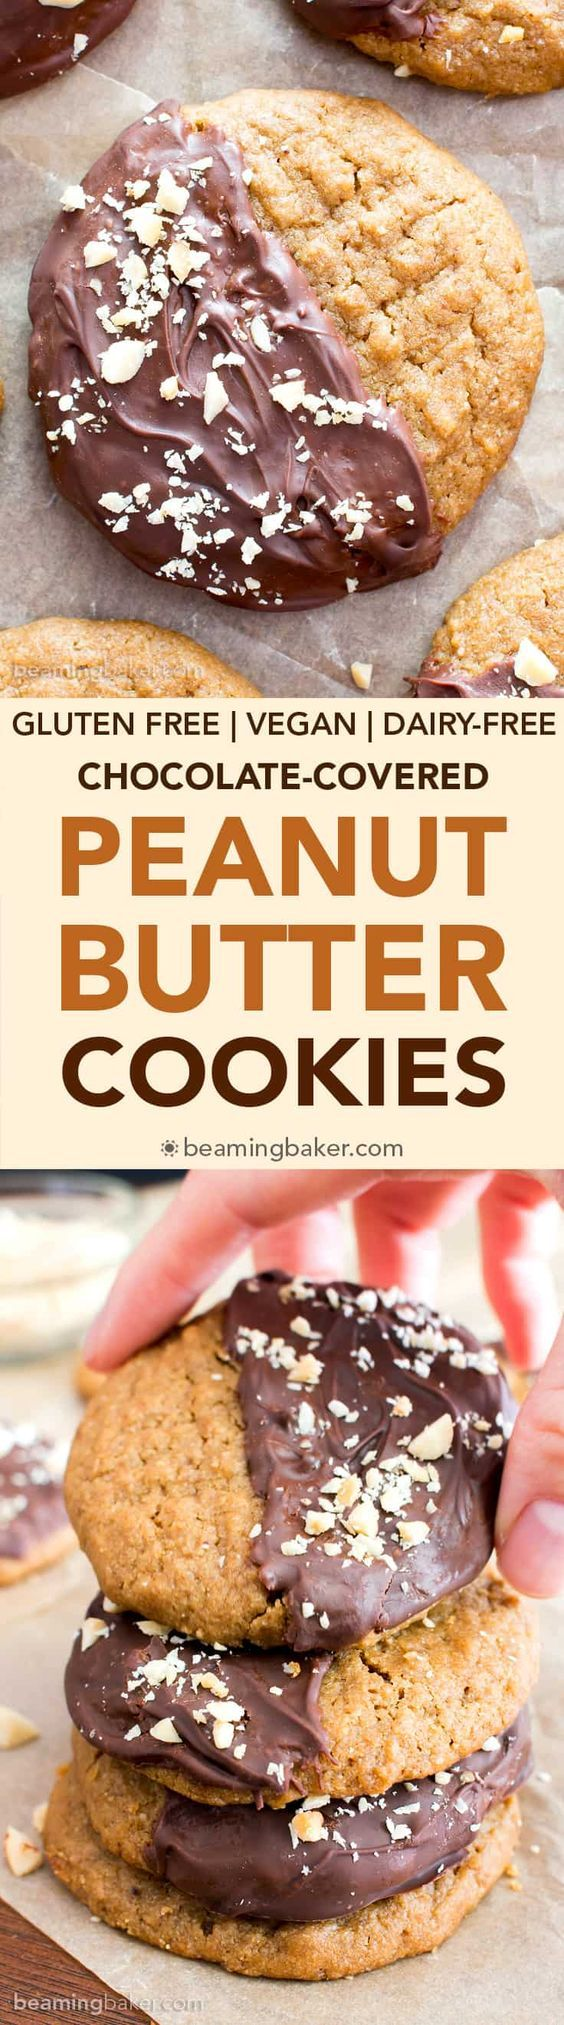 Chocolate Covered Peanut Butter Cookies (V, GF): an easy recipe for soft 'n chewy peanut butter cookies wrapped in a velvety layer of chocolate and topped with crunchy peanuts. #Vegan #Desserts #GlutenFree #DairyFree #Healthy #Holiday | Recipe on BeamingBaker.com